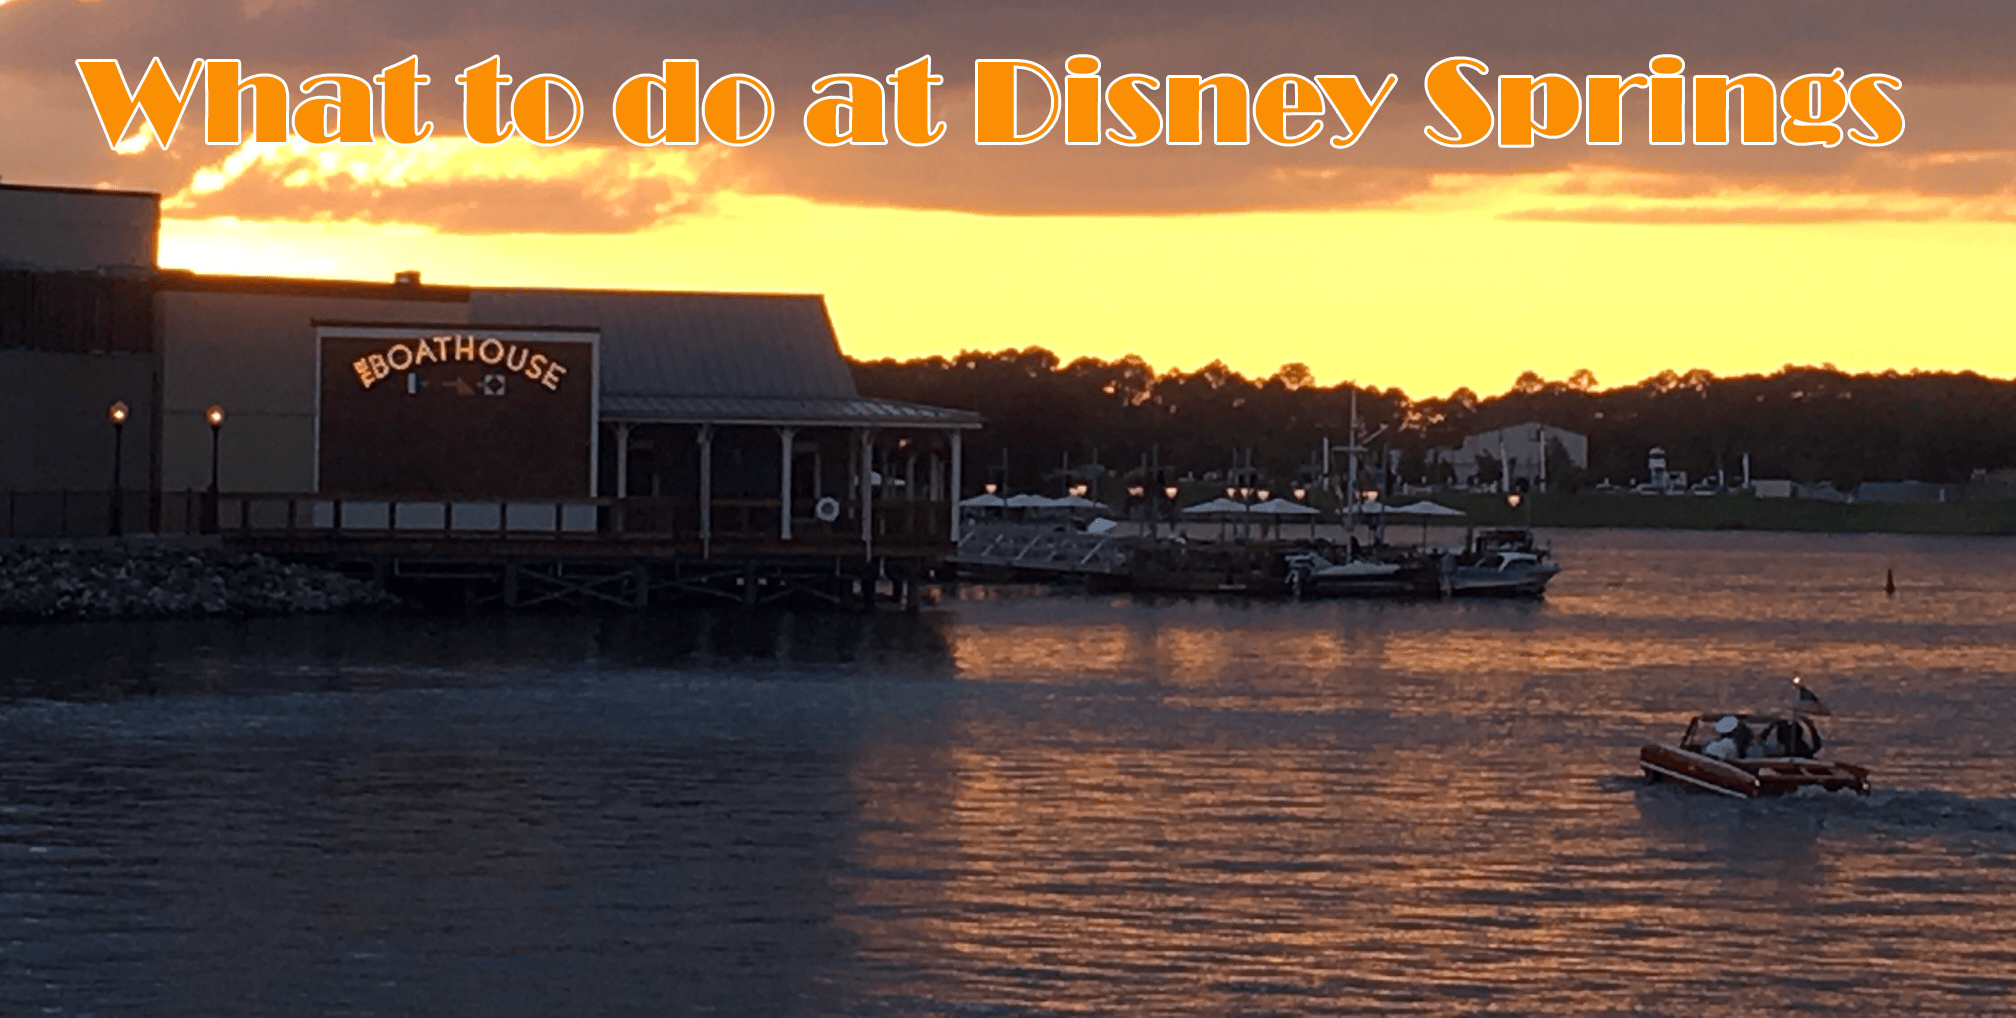 Disney Springs What to do